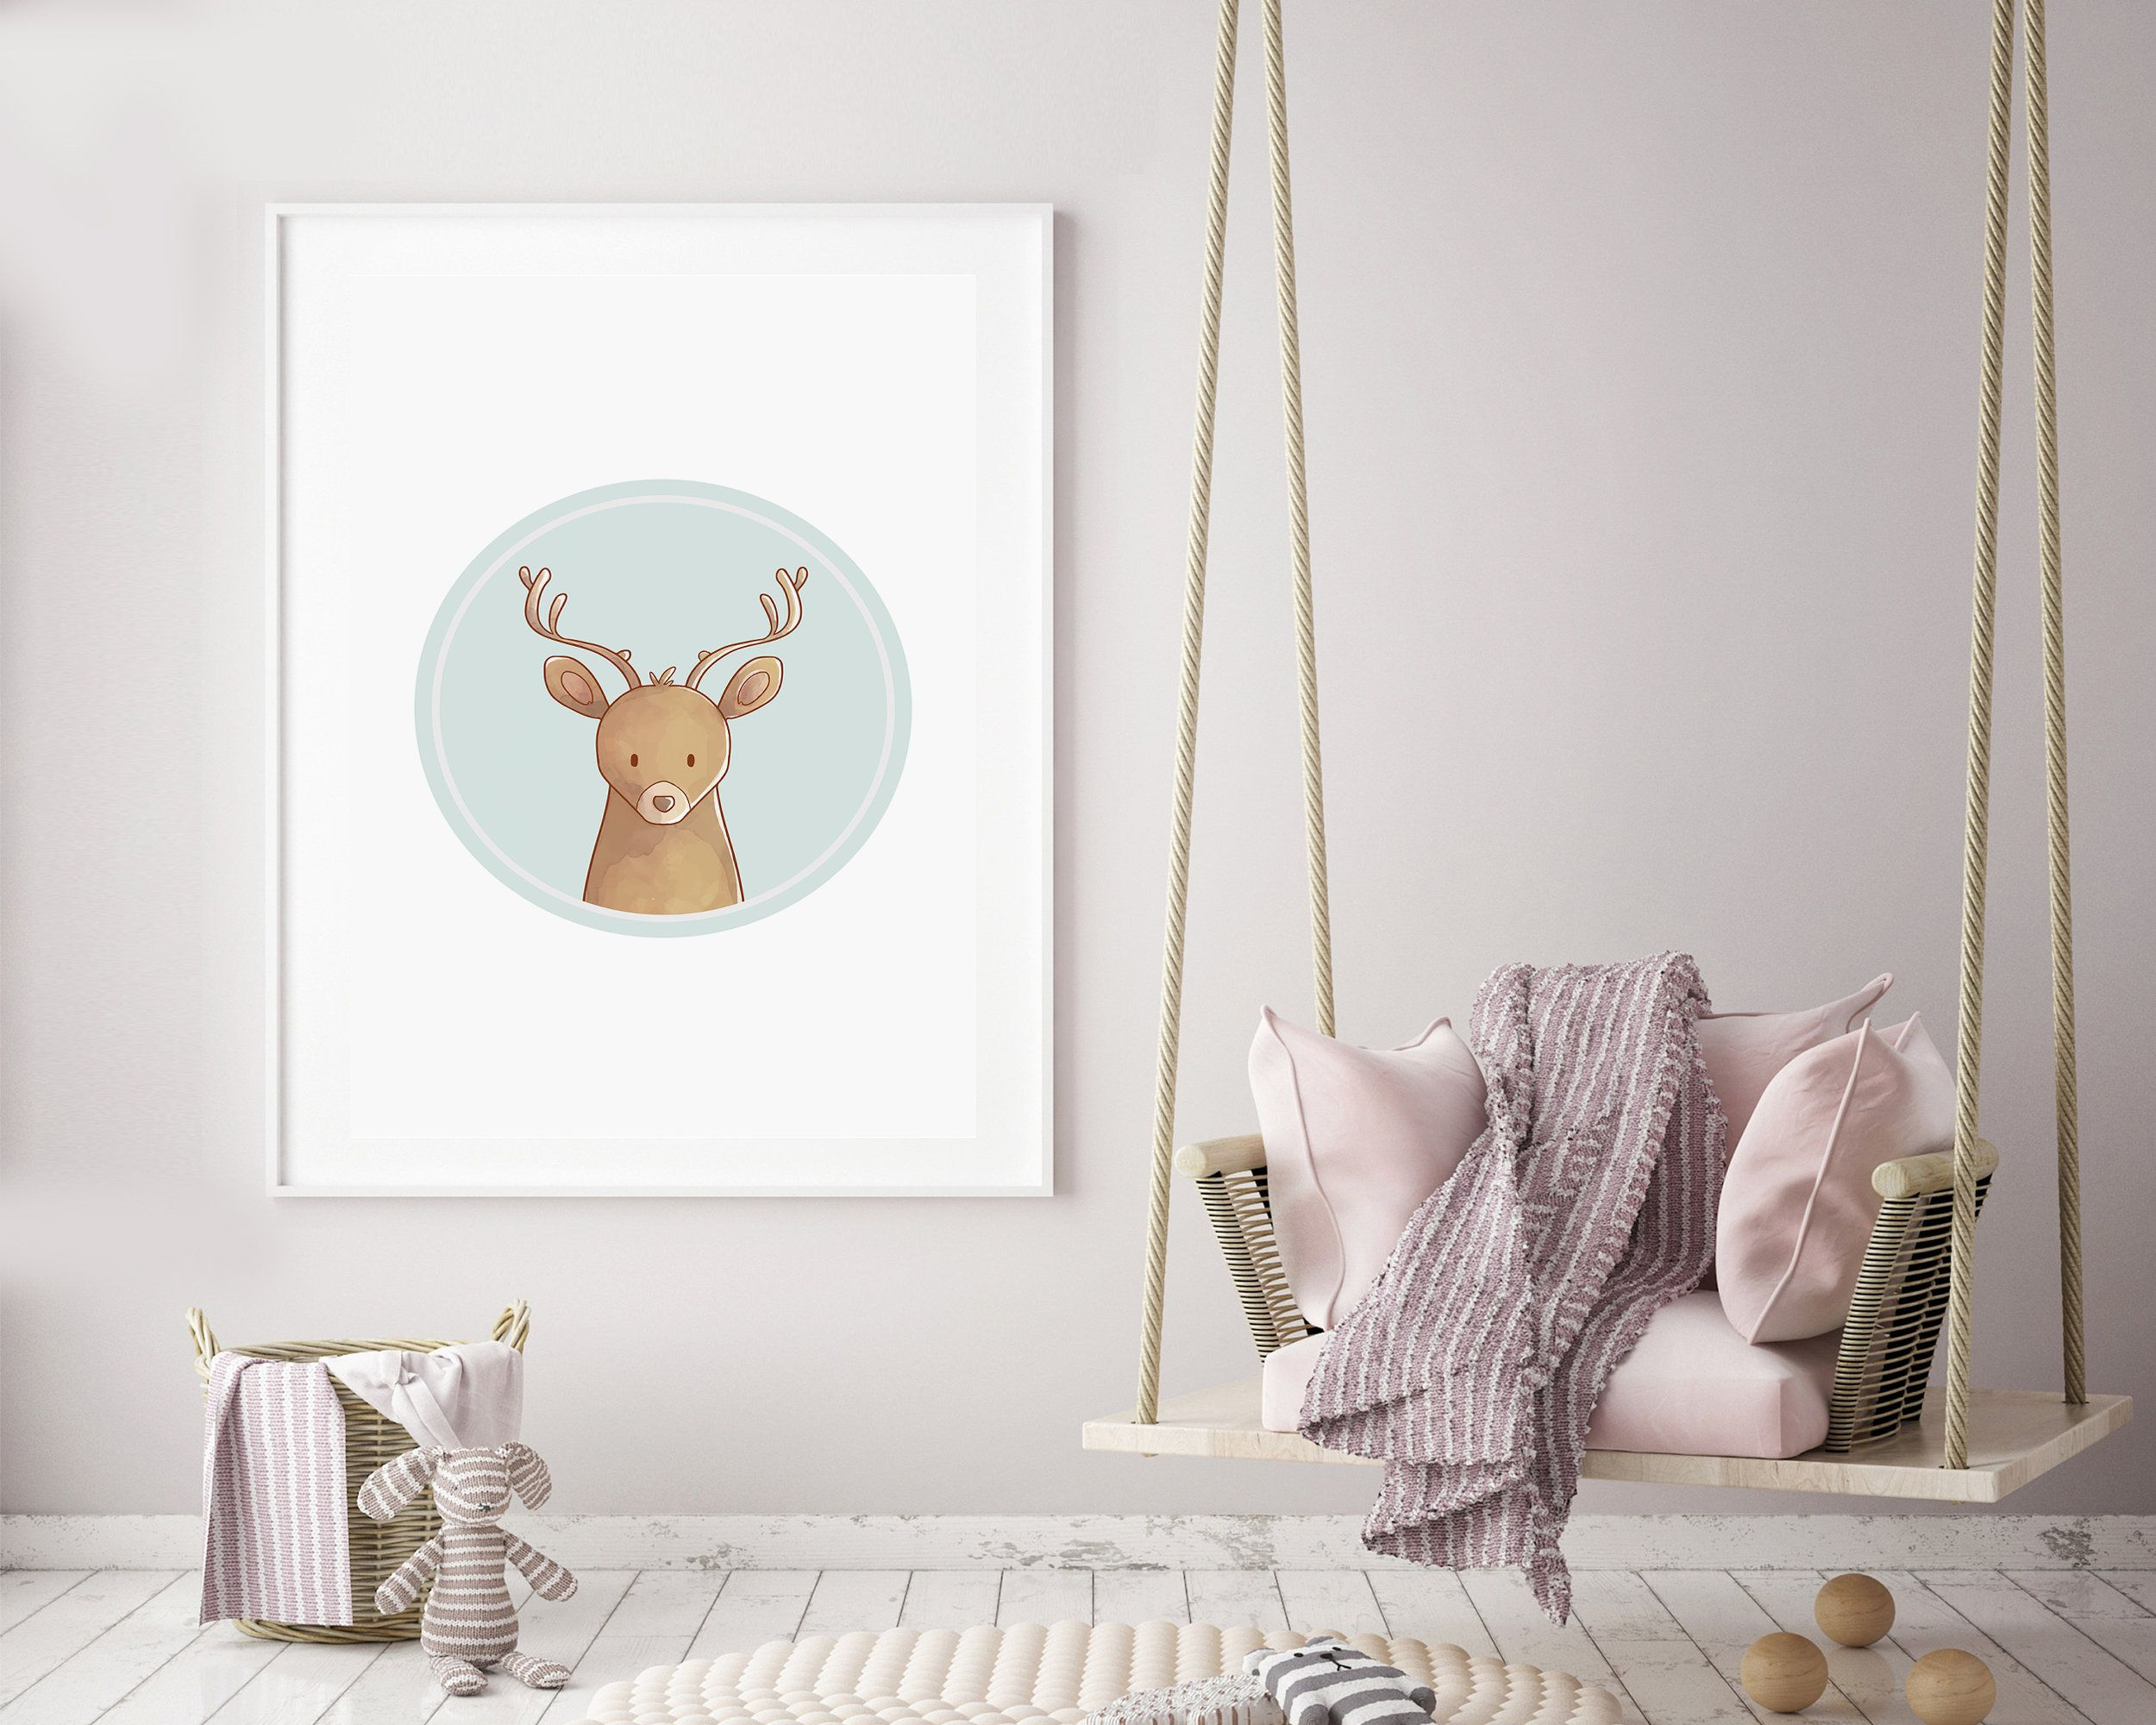 Deer Wall Art - Blue Deer Prints - Nursery Print